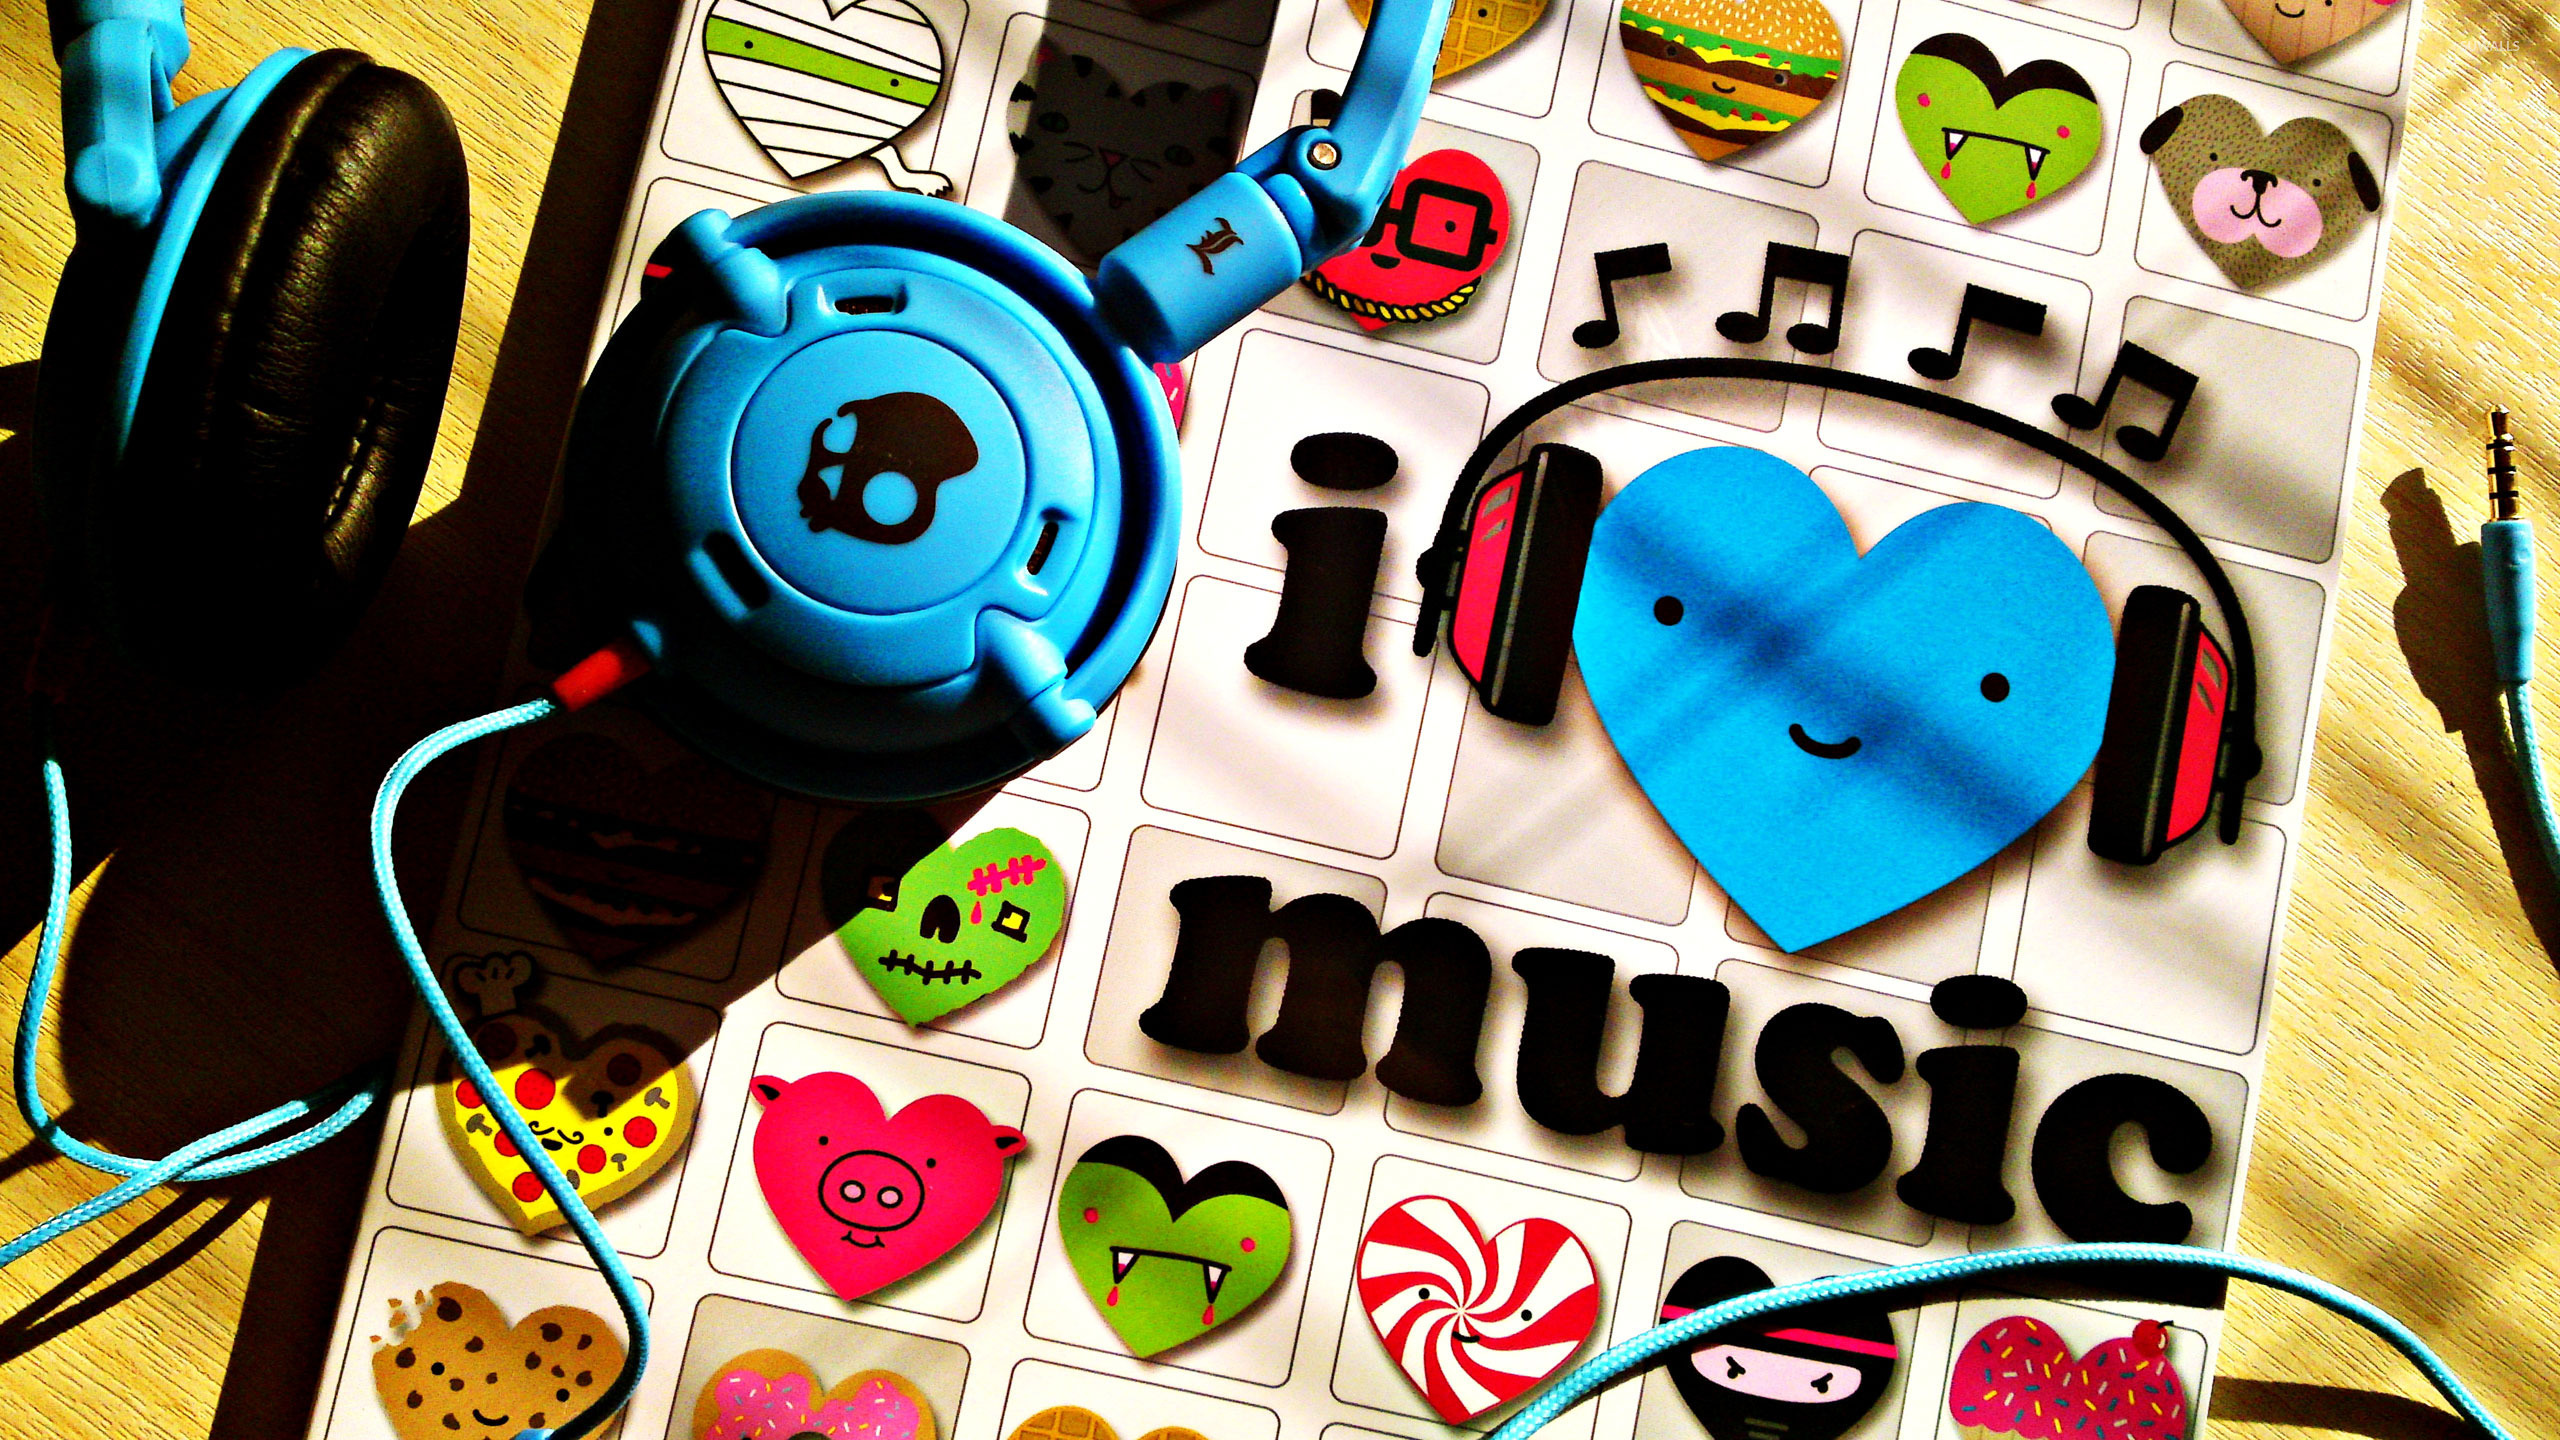 I love music wallpaper - Music wallpapers - #23671